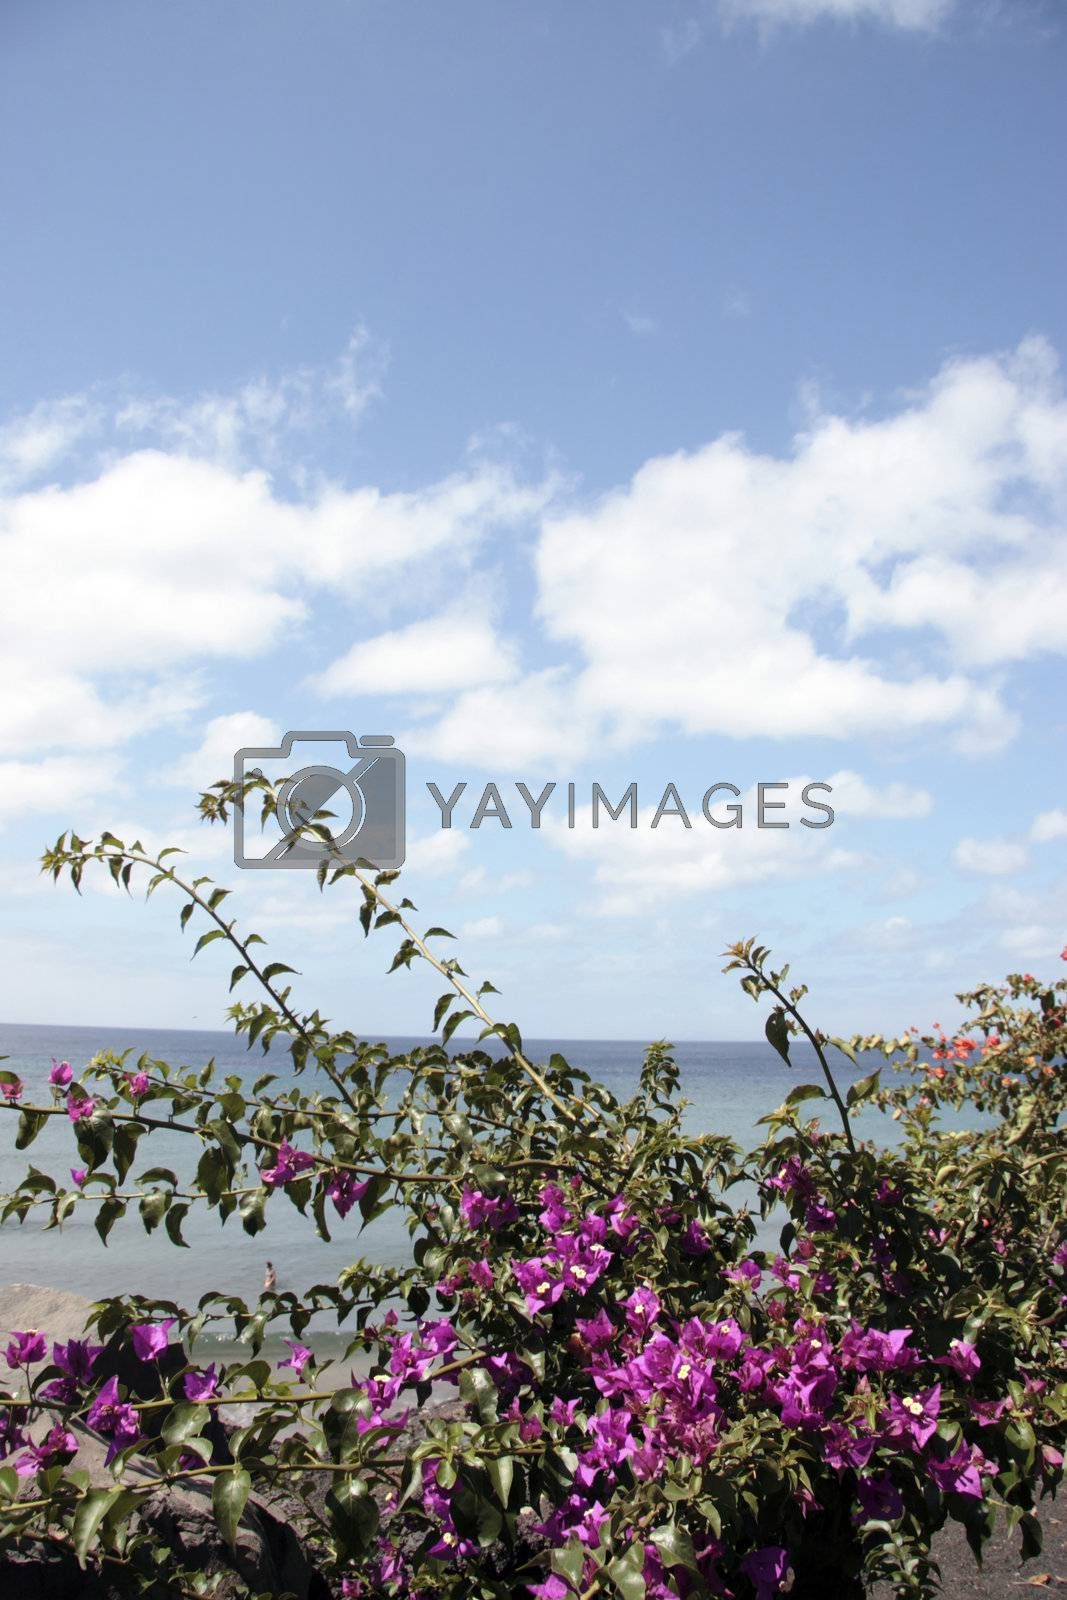 a view from the lanzarote coast line